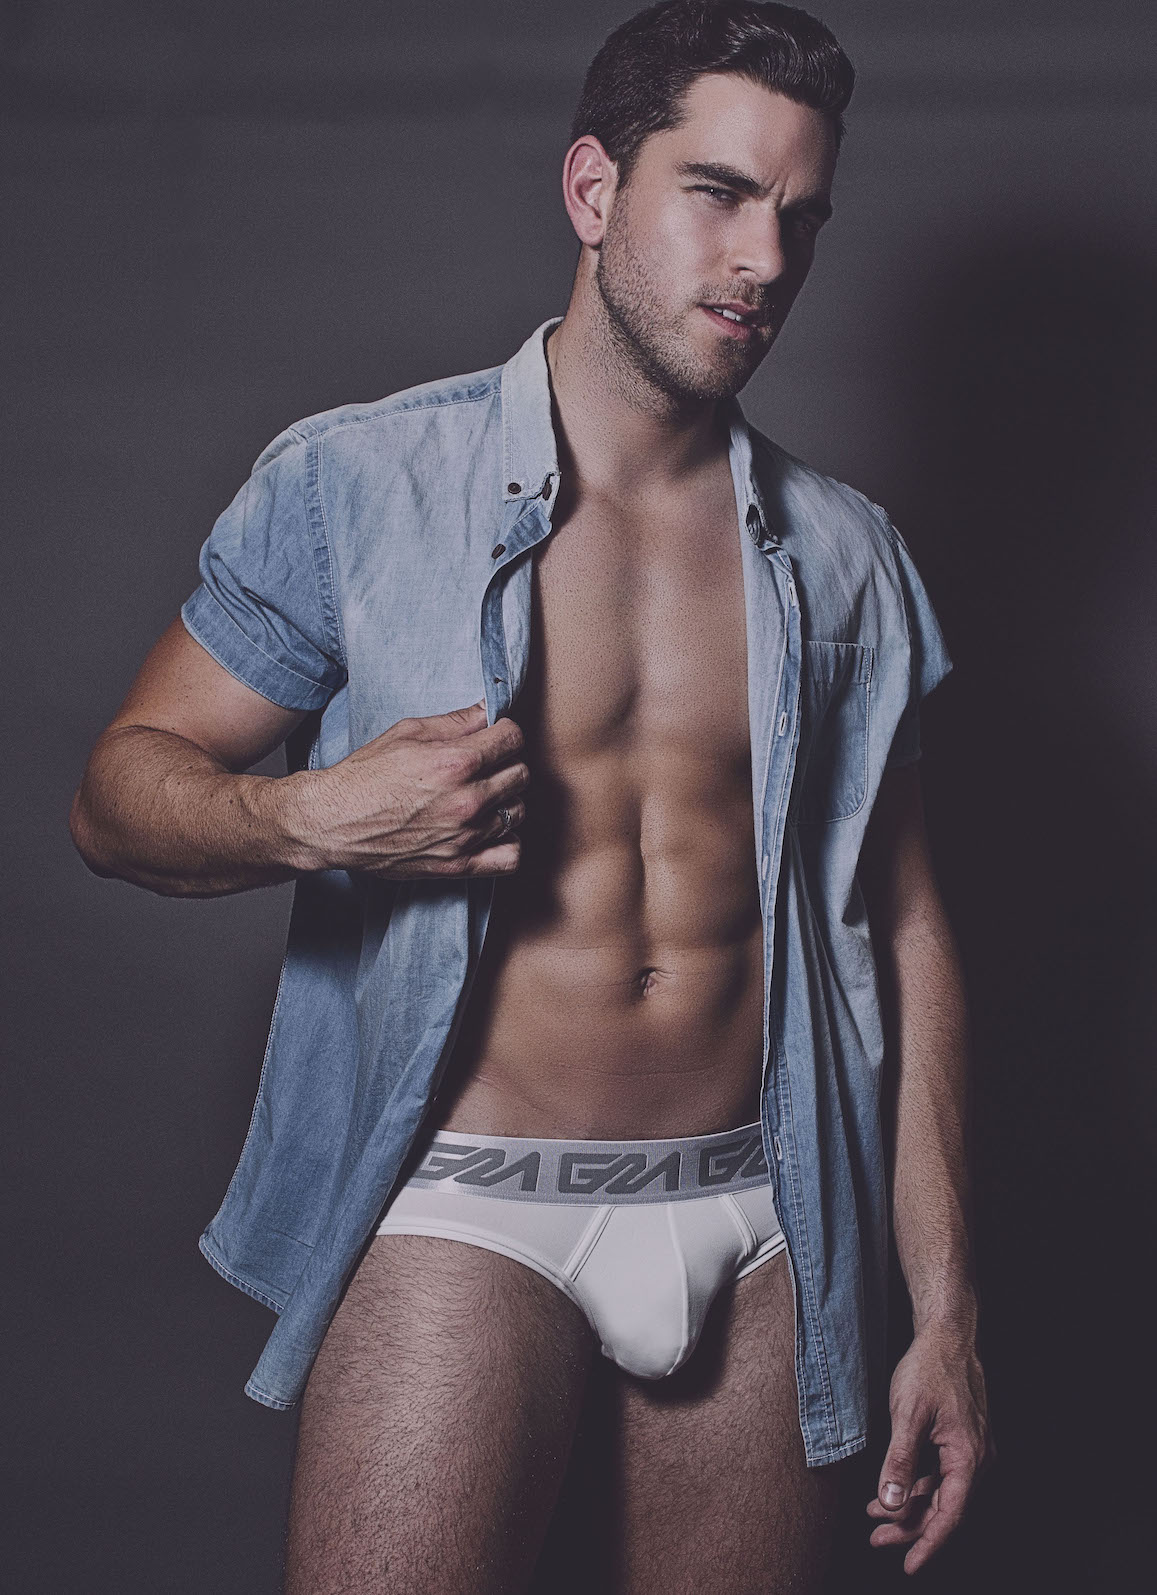 Brief Distraction featuring Garcon Model